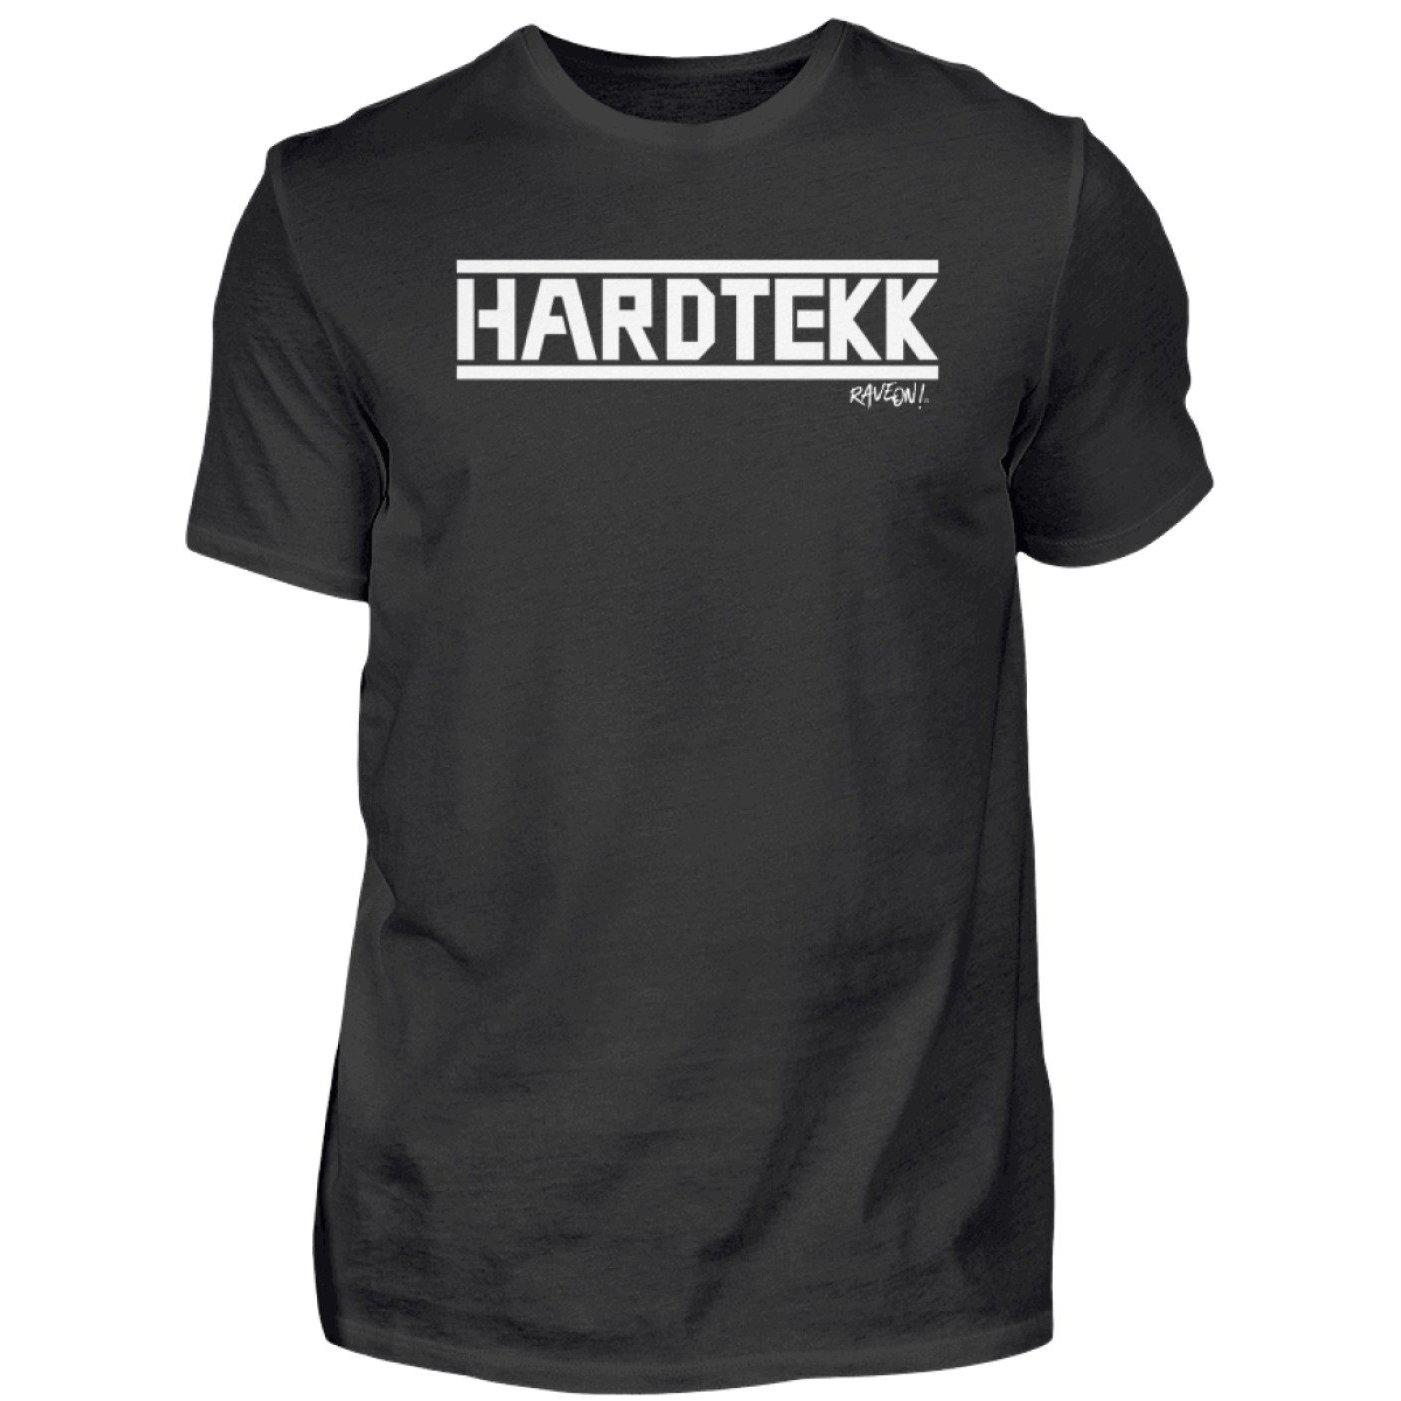 HARDTEKK - Rave On!® - Herren Shirt-Herren Basic T-Shirt-Black-S-Rave-On! I www.rave-on.shop I Deine Rave & Techno Szene Shop I Design - HARDTEKK - Rave On!®, Global recommendation, hardtekk, on, rave, techno, Tekk, tekkno - Sexy Festival Streetwear , Clubwear & Raver Style